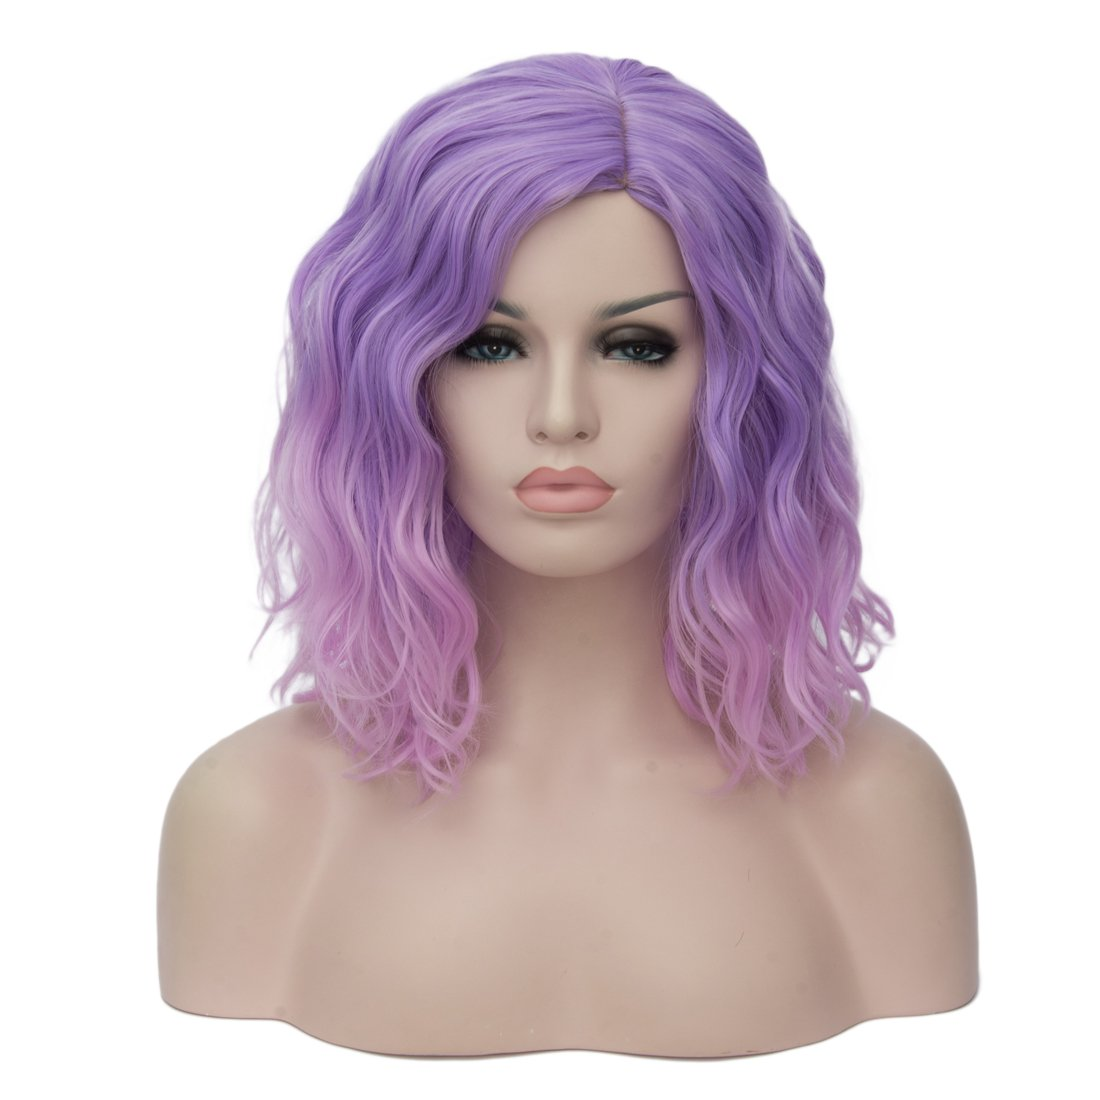 Mildiso Wigs Women's Short Bob Costume Wig Purple to Pink Ombre Wig Halloween Costume for Women Girls with Wig Cap M004PP